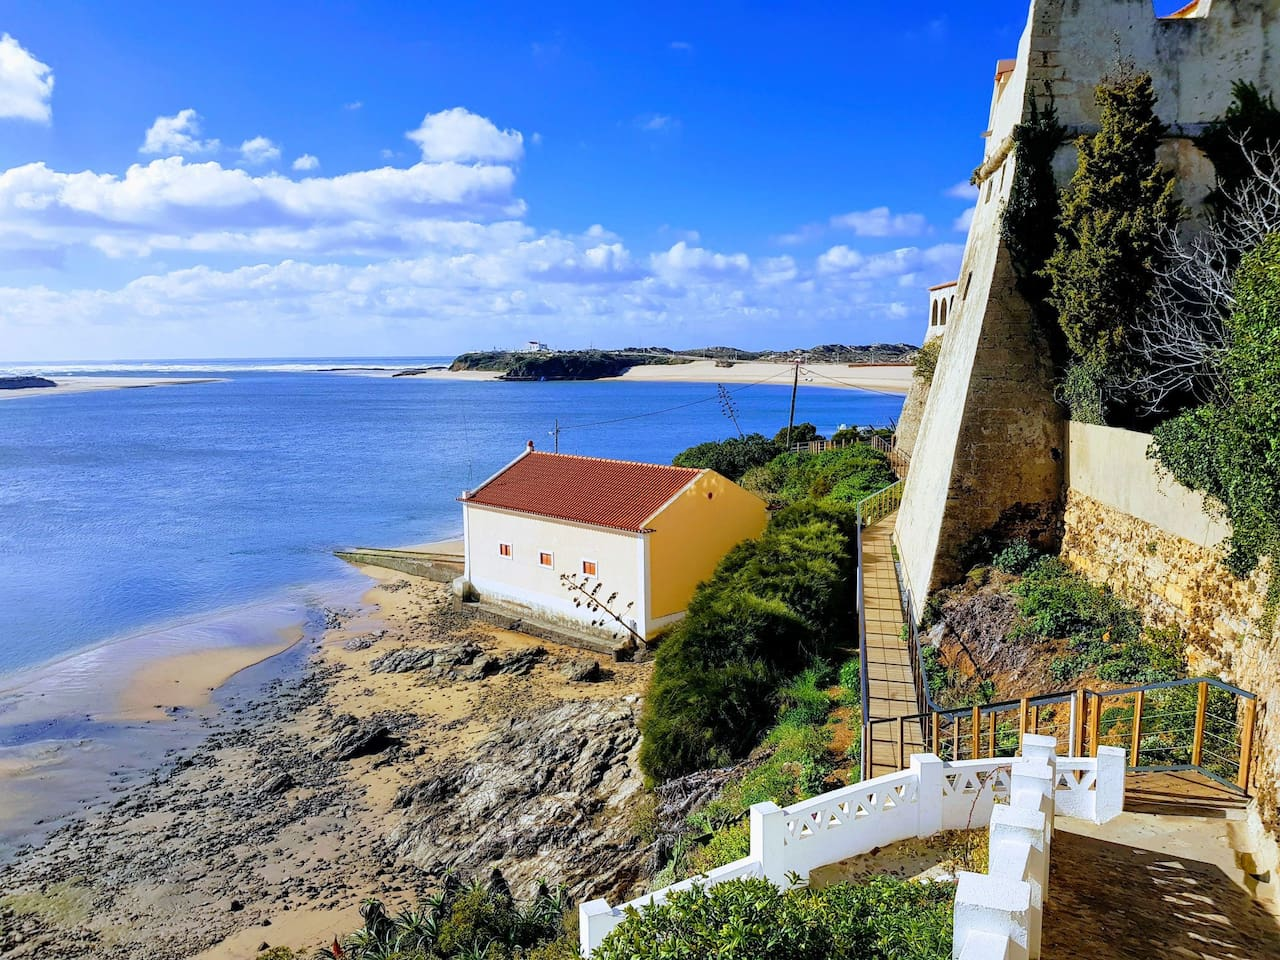 Imbatível 3 Good lovely one bedroom flat at 900 from beach - appartements à louer à